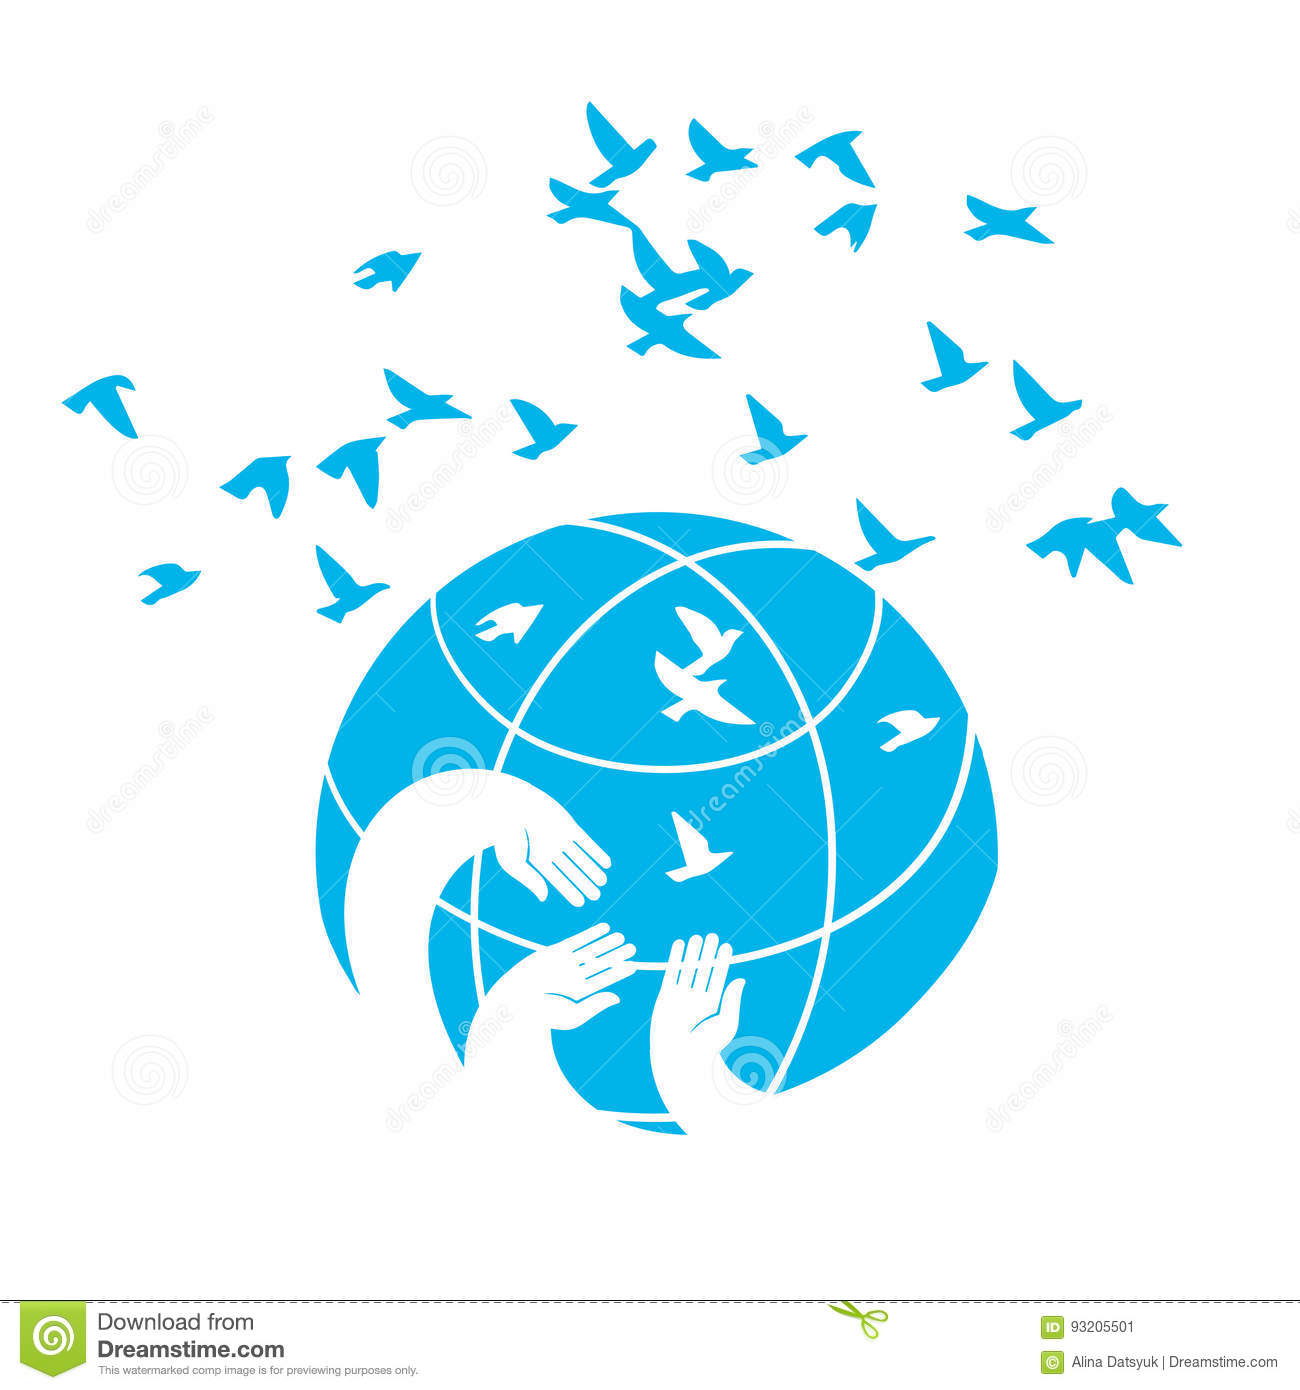 Icon A Symbol Of Peace Blue Planet Stock Vector Illustration Of